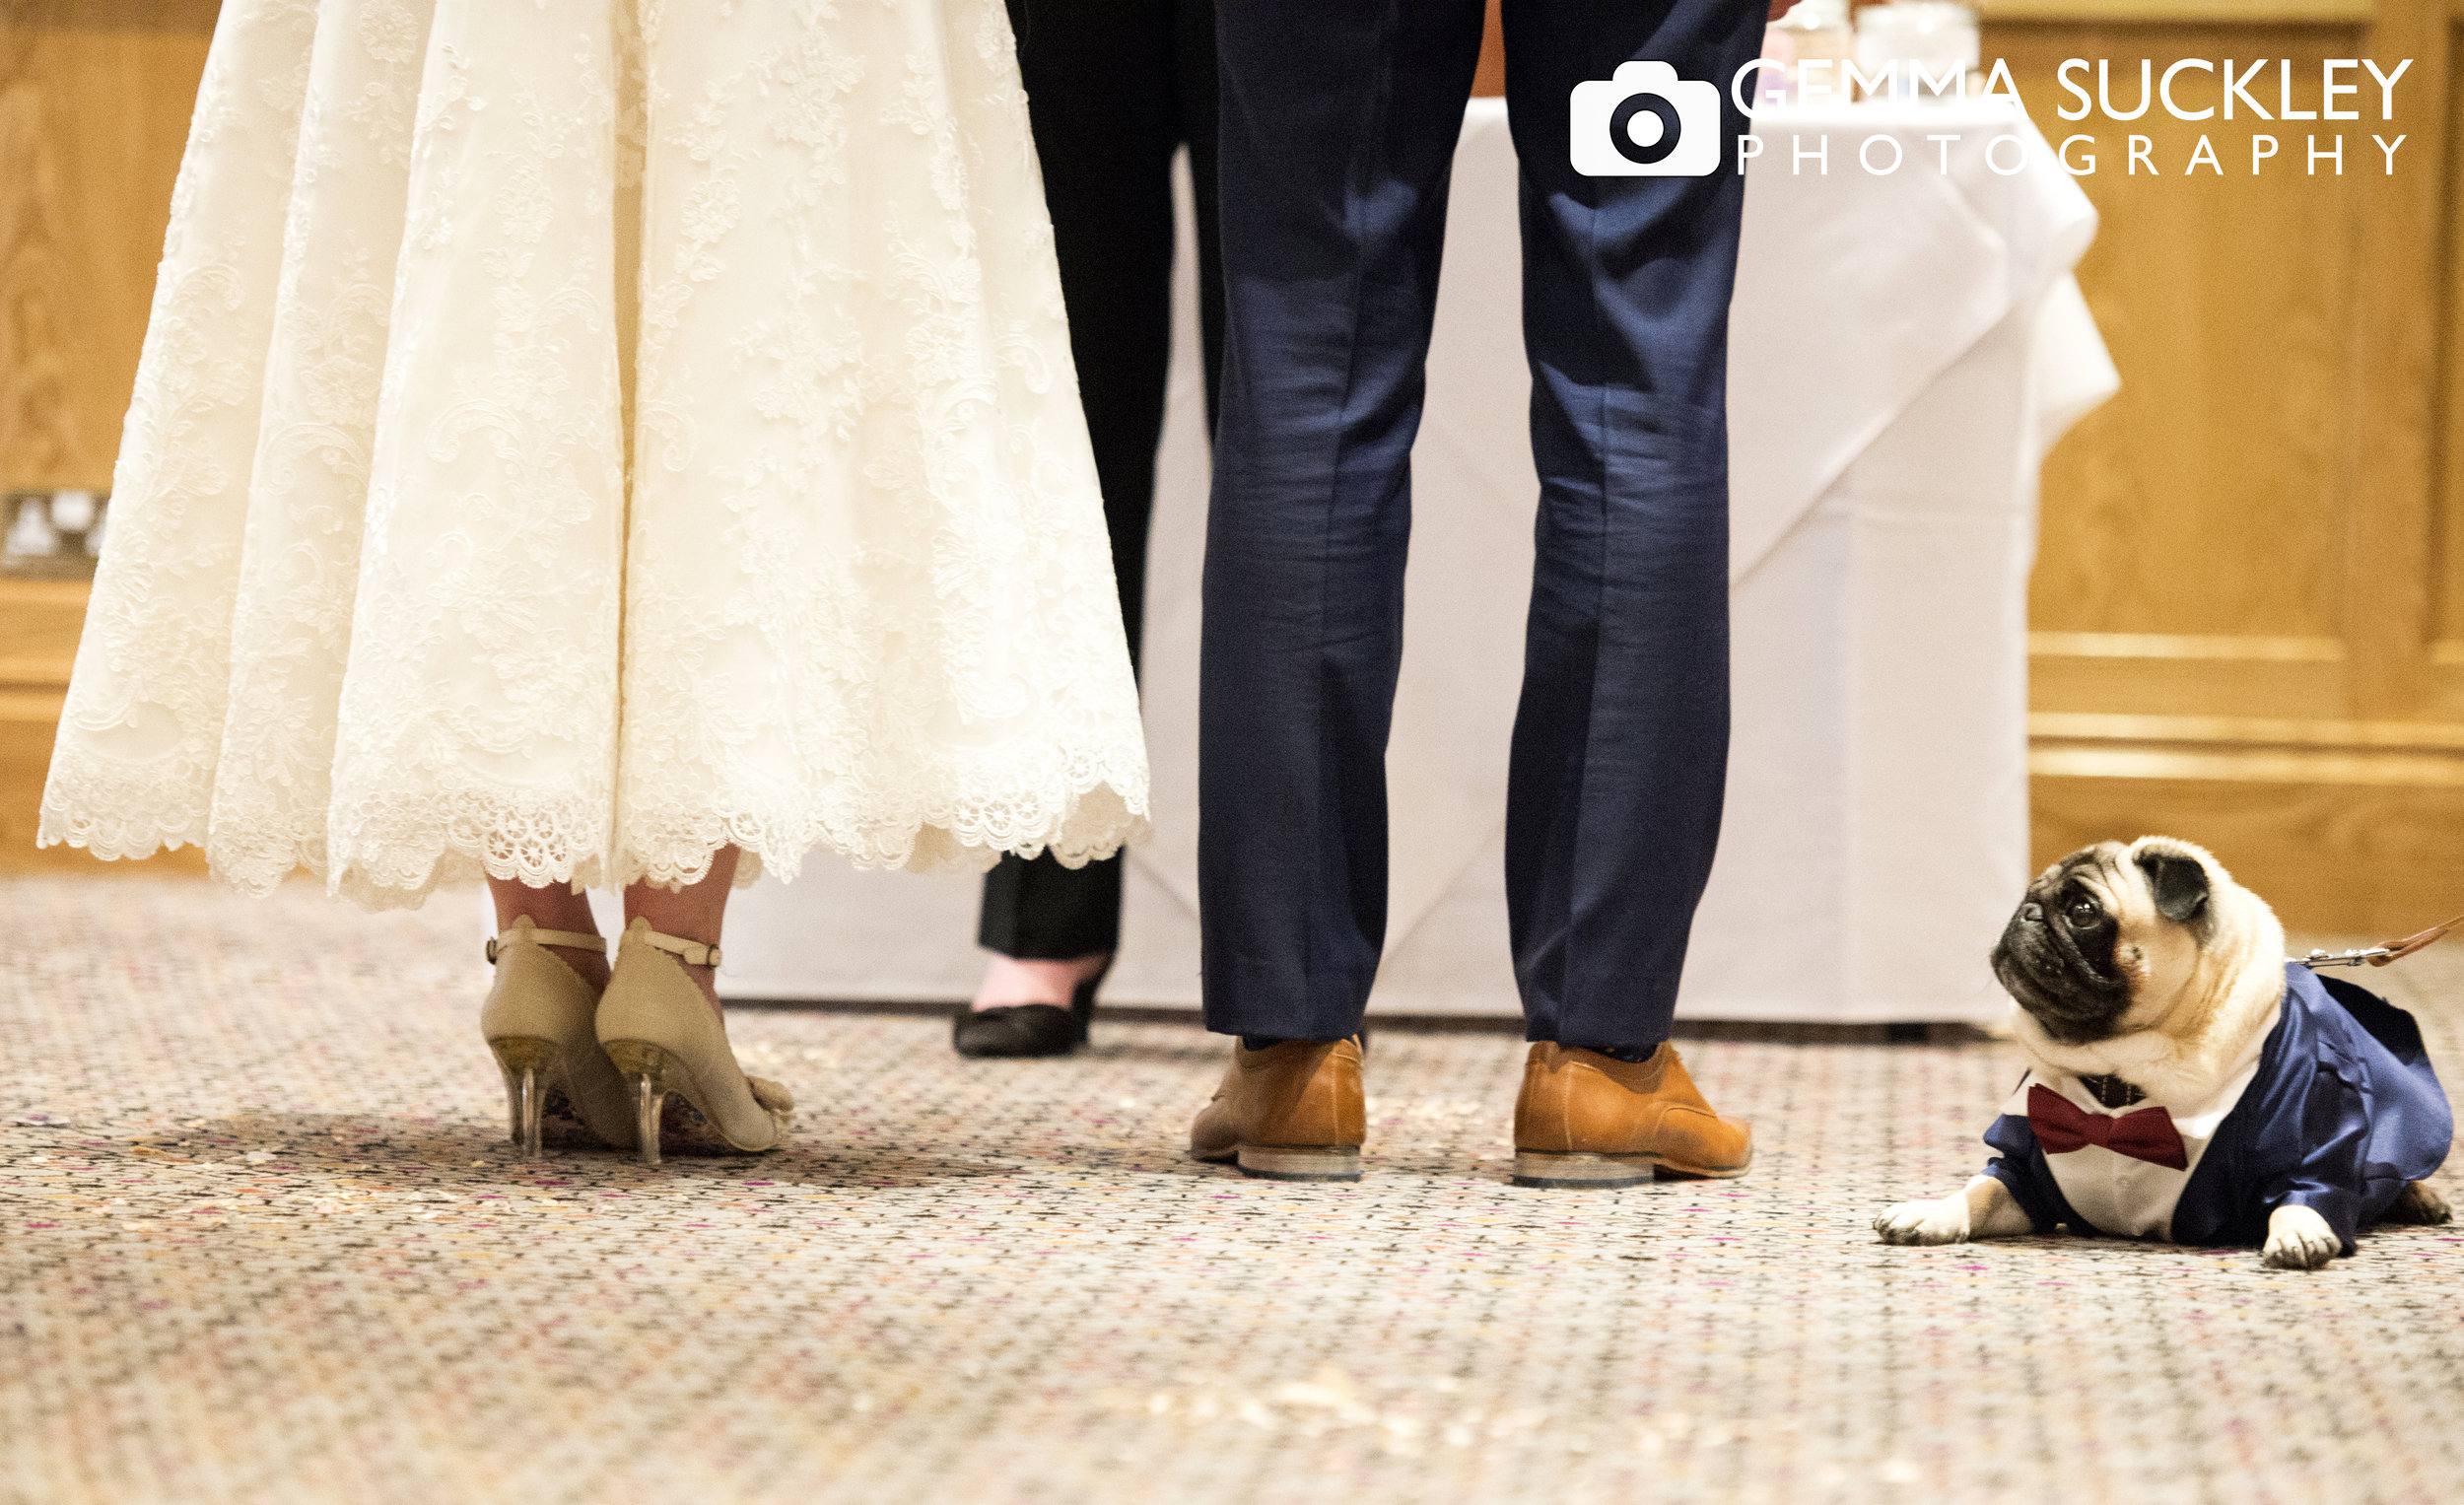 photo of Bride and groom's feet with a pug dog looking up